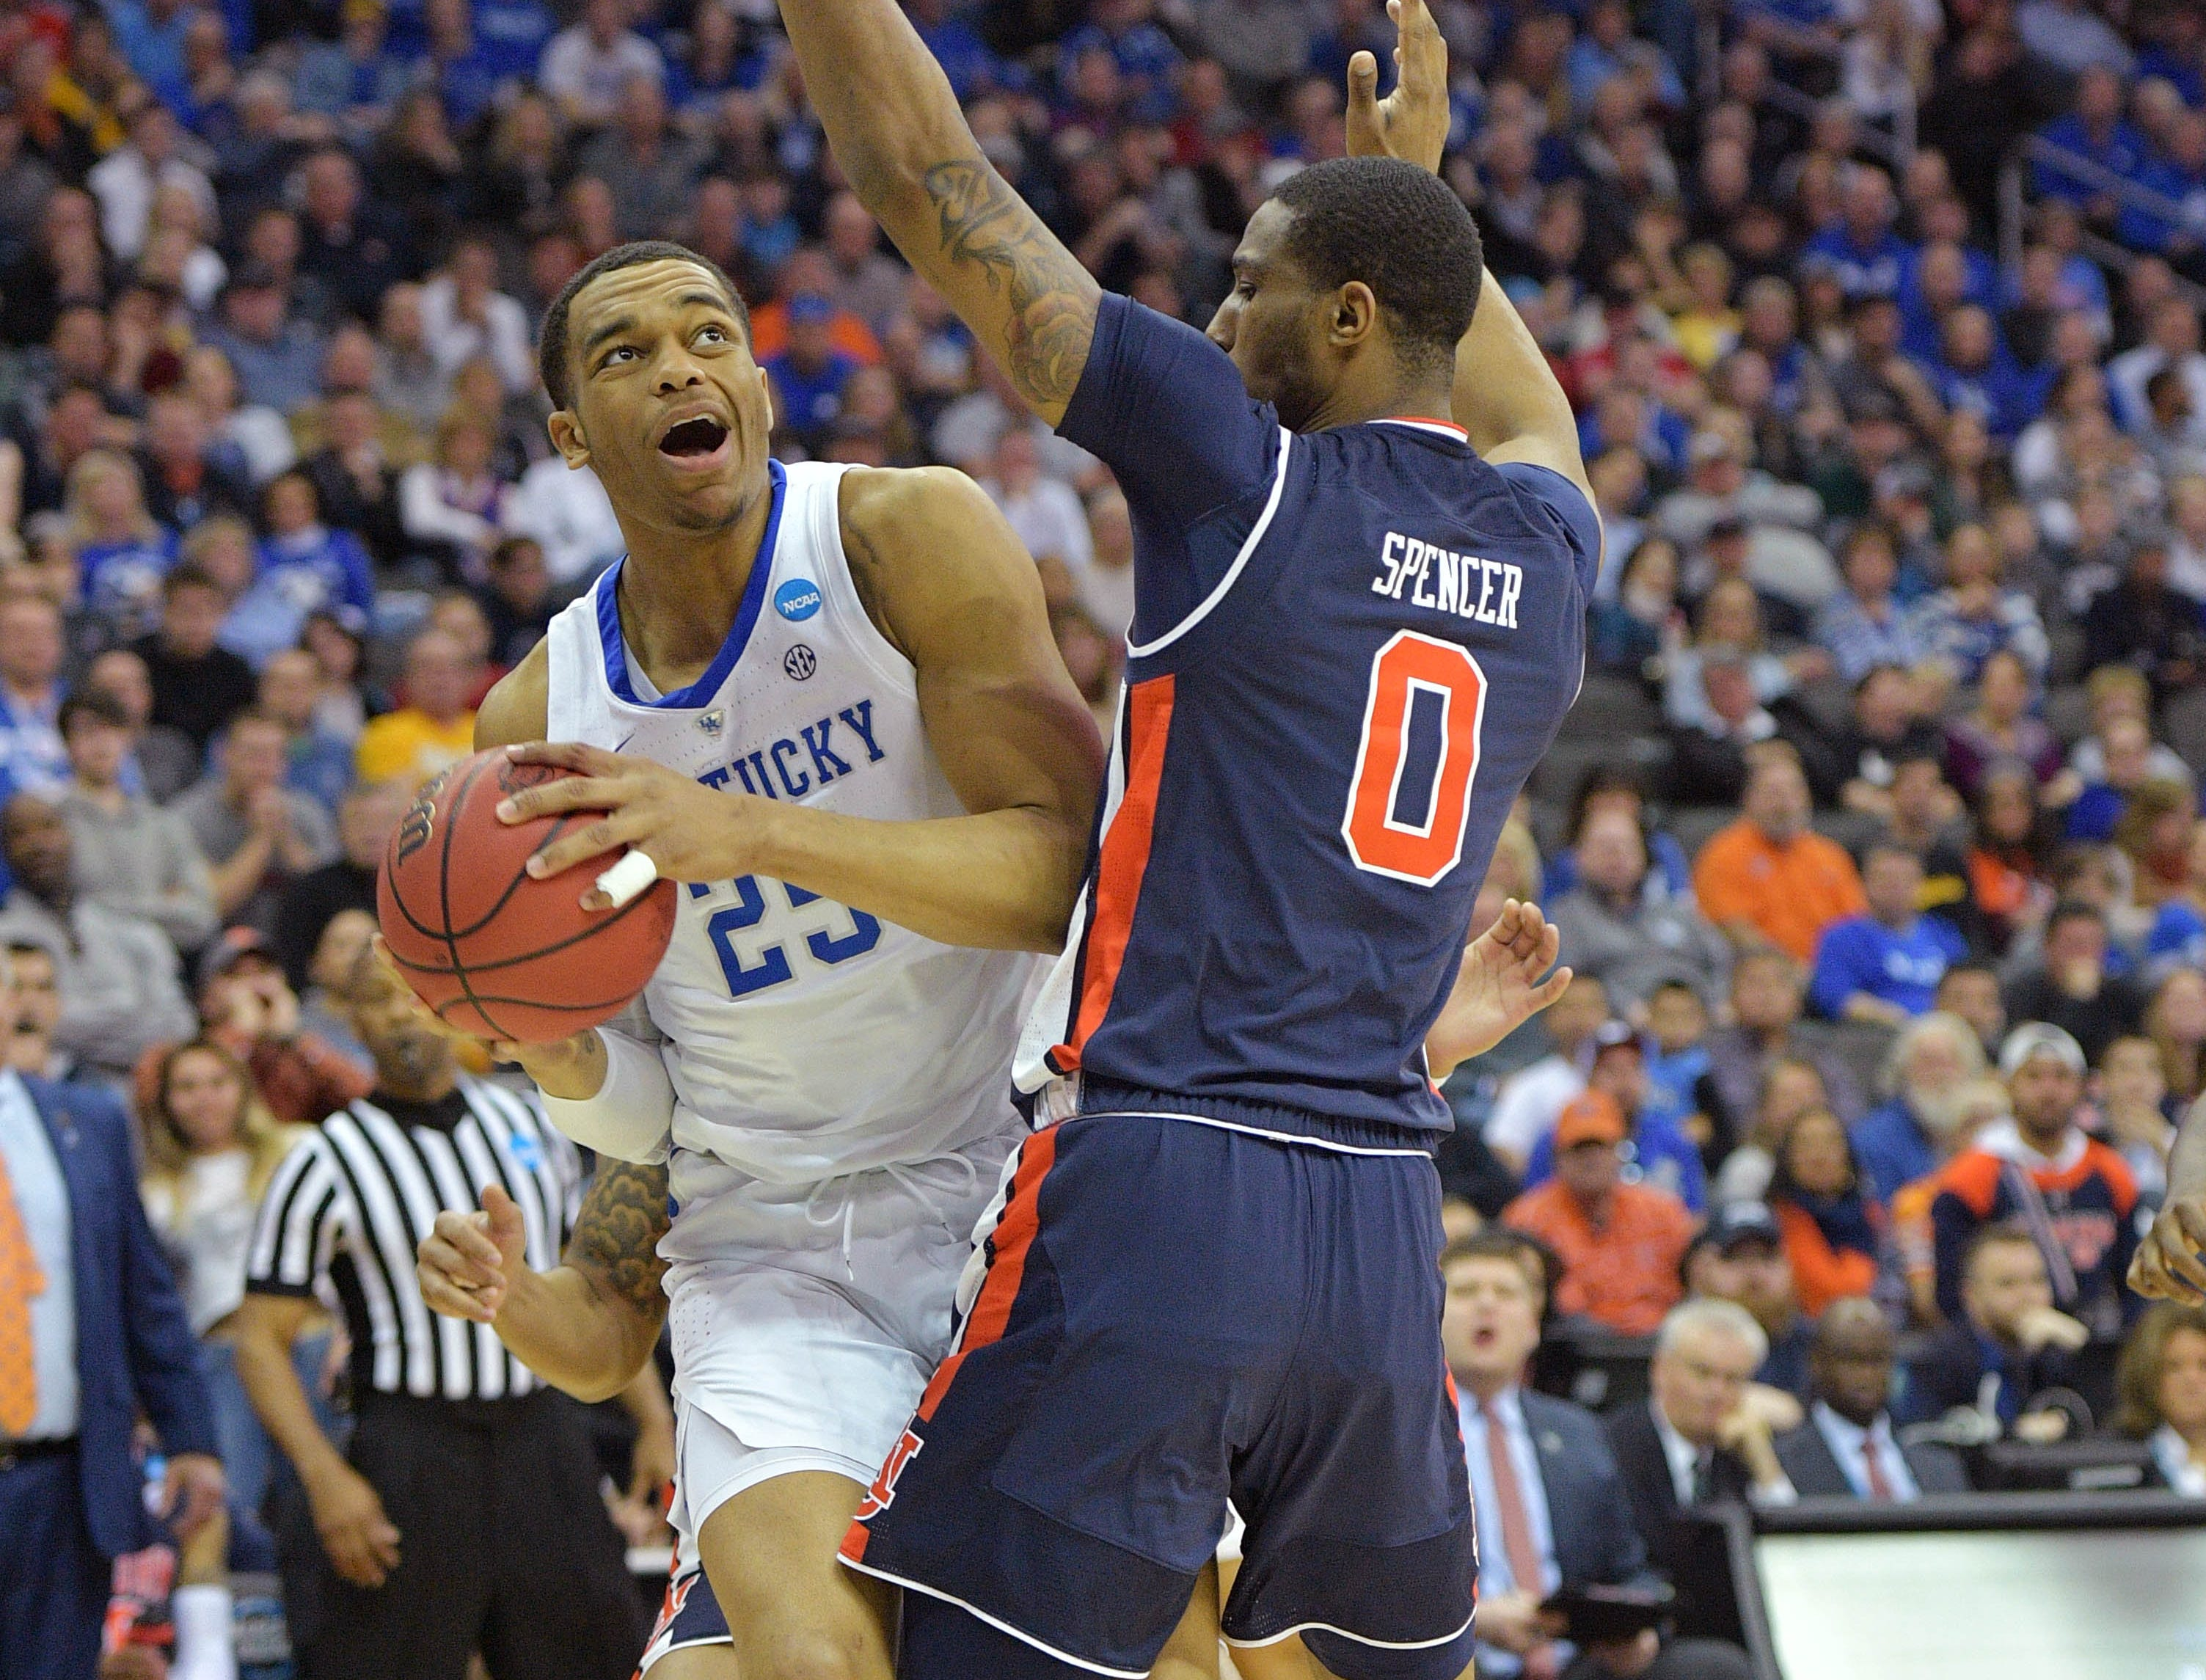 Mar 31, 2019; Kansas City, MO, United States; Kentucky Wildcats forward PJ Washington (25) looks to shoot against Auburn Tigers forward Horace Spencer (0) during the first half in the championship game of the midwest regional of the 2019 NCAA Tournament at Sprint Center. Mandatory Credit: Denny Medley-USA TODAY Sports